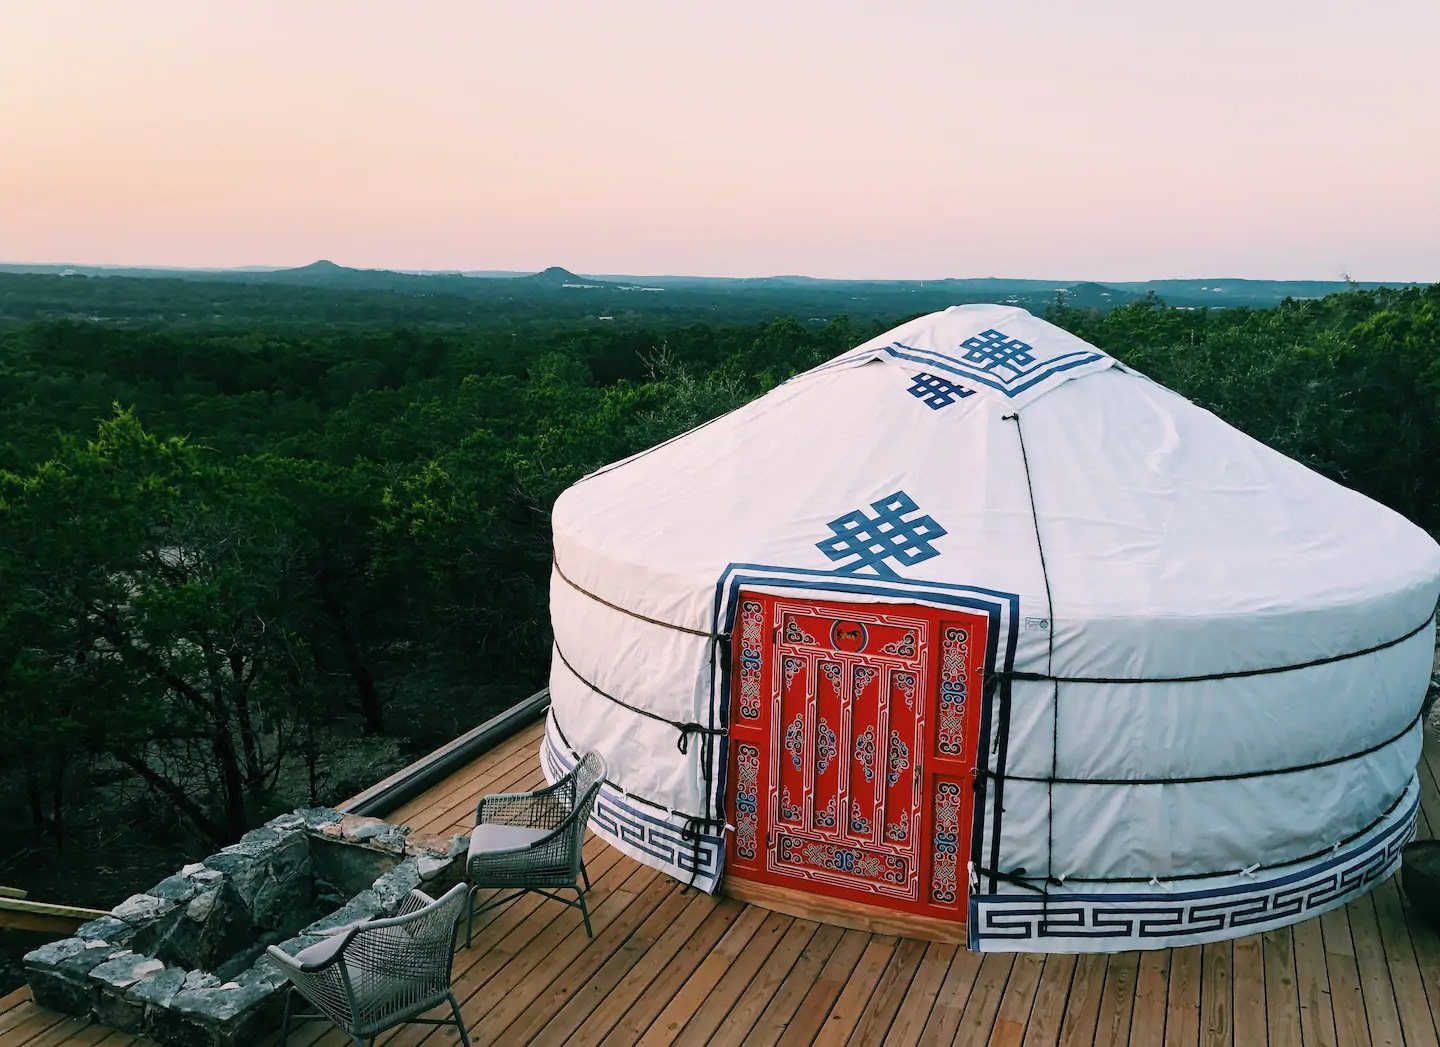 Photo of the exterior of a luxury yurt Airbnb located near New Braunfels.